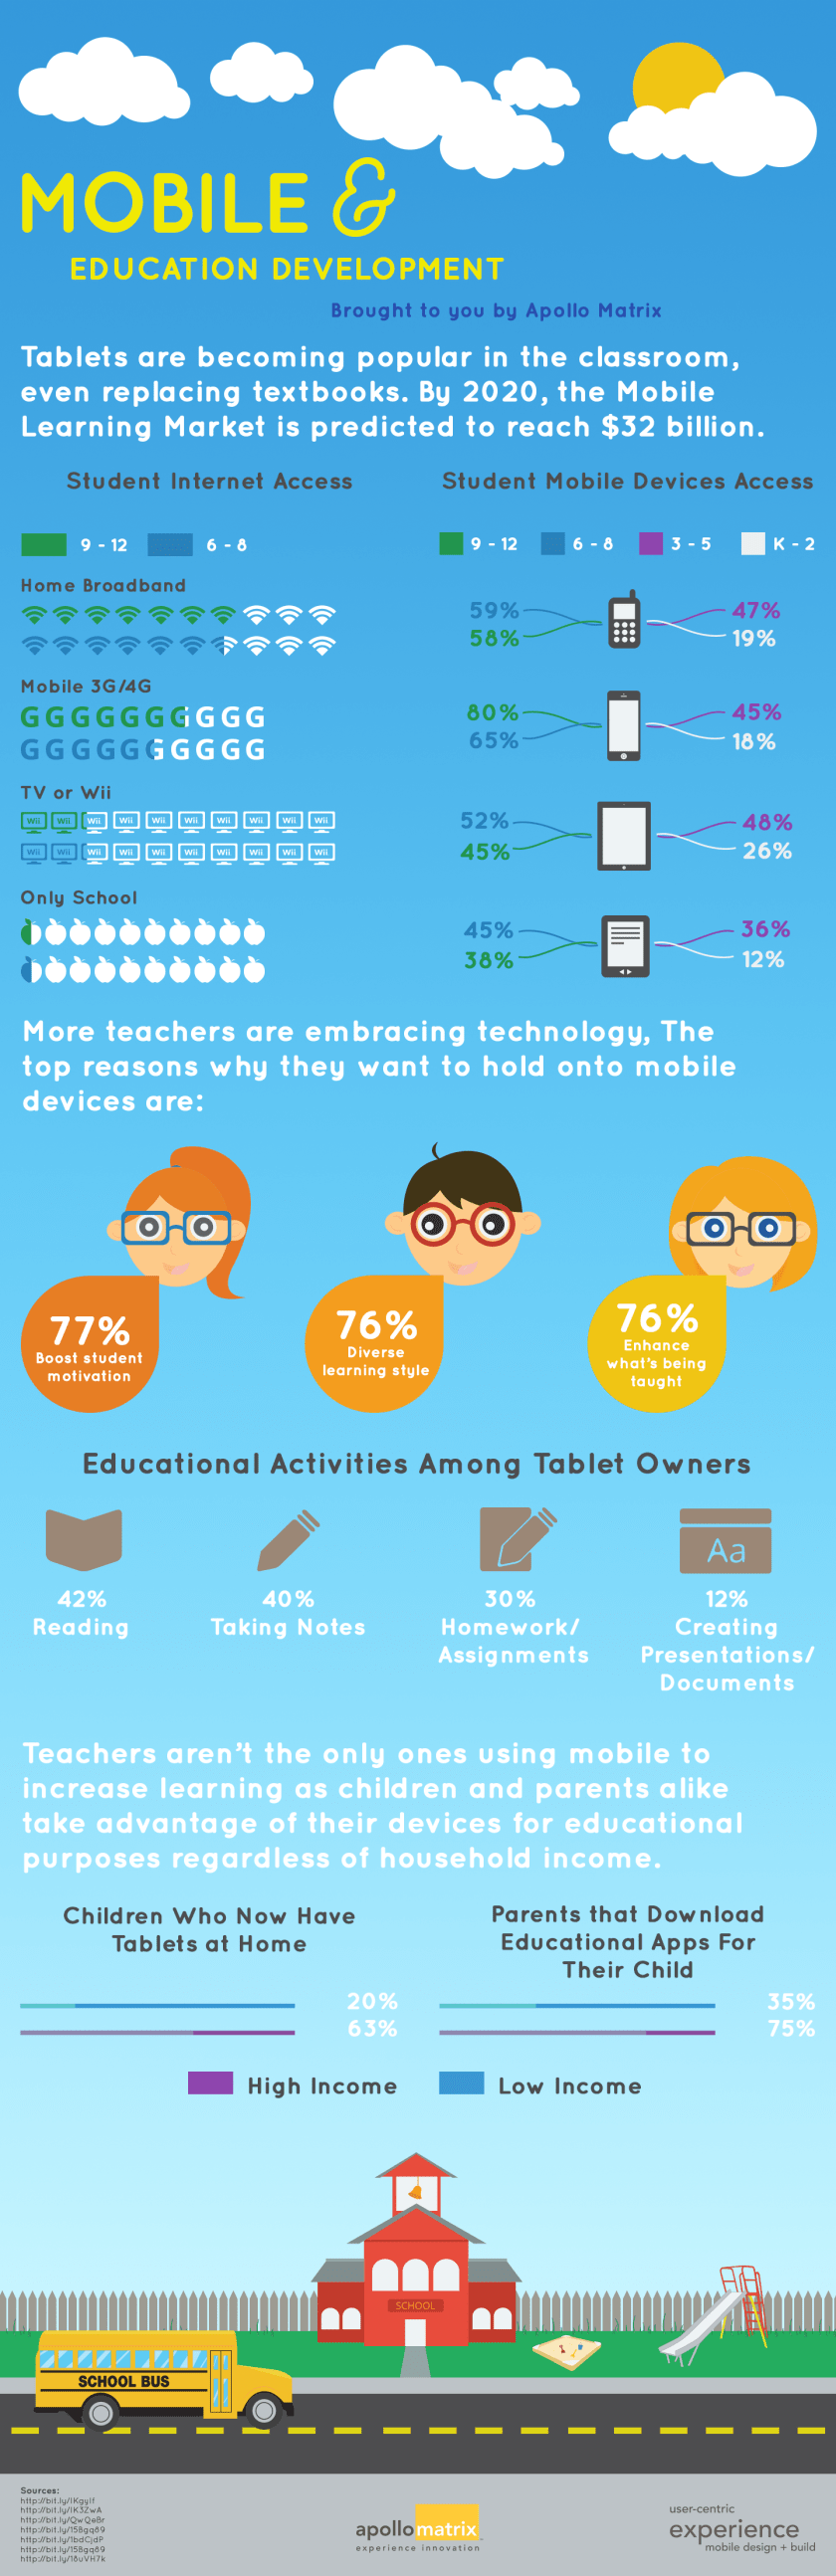 mobile education infographic